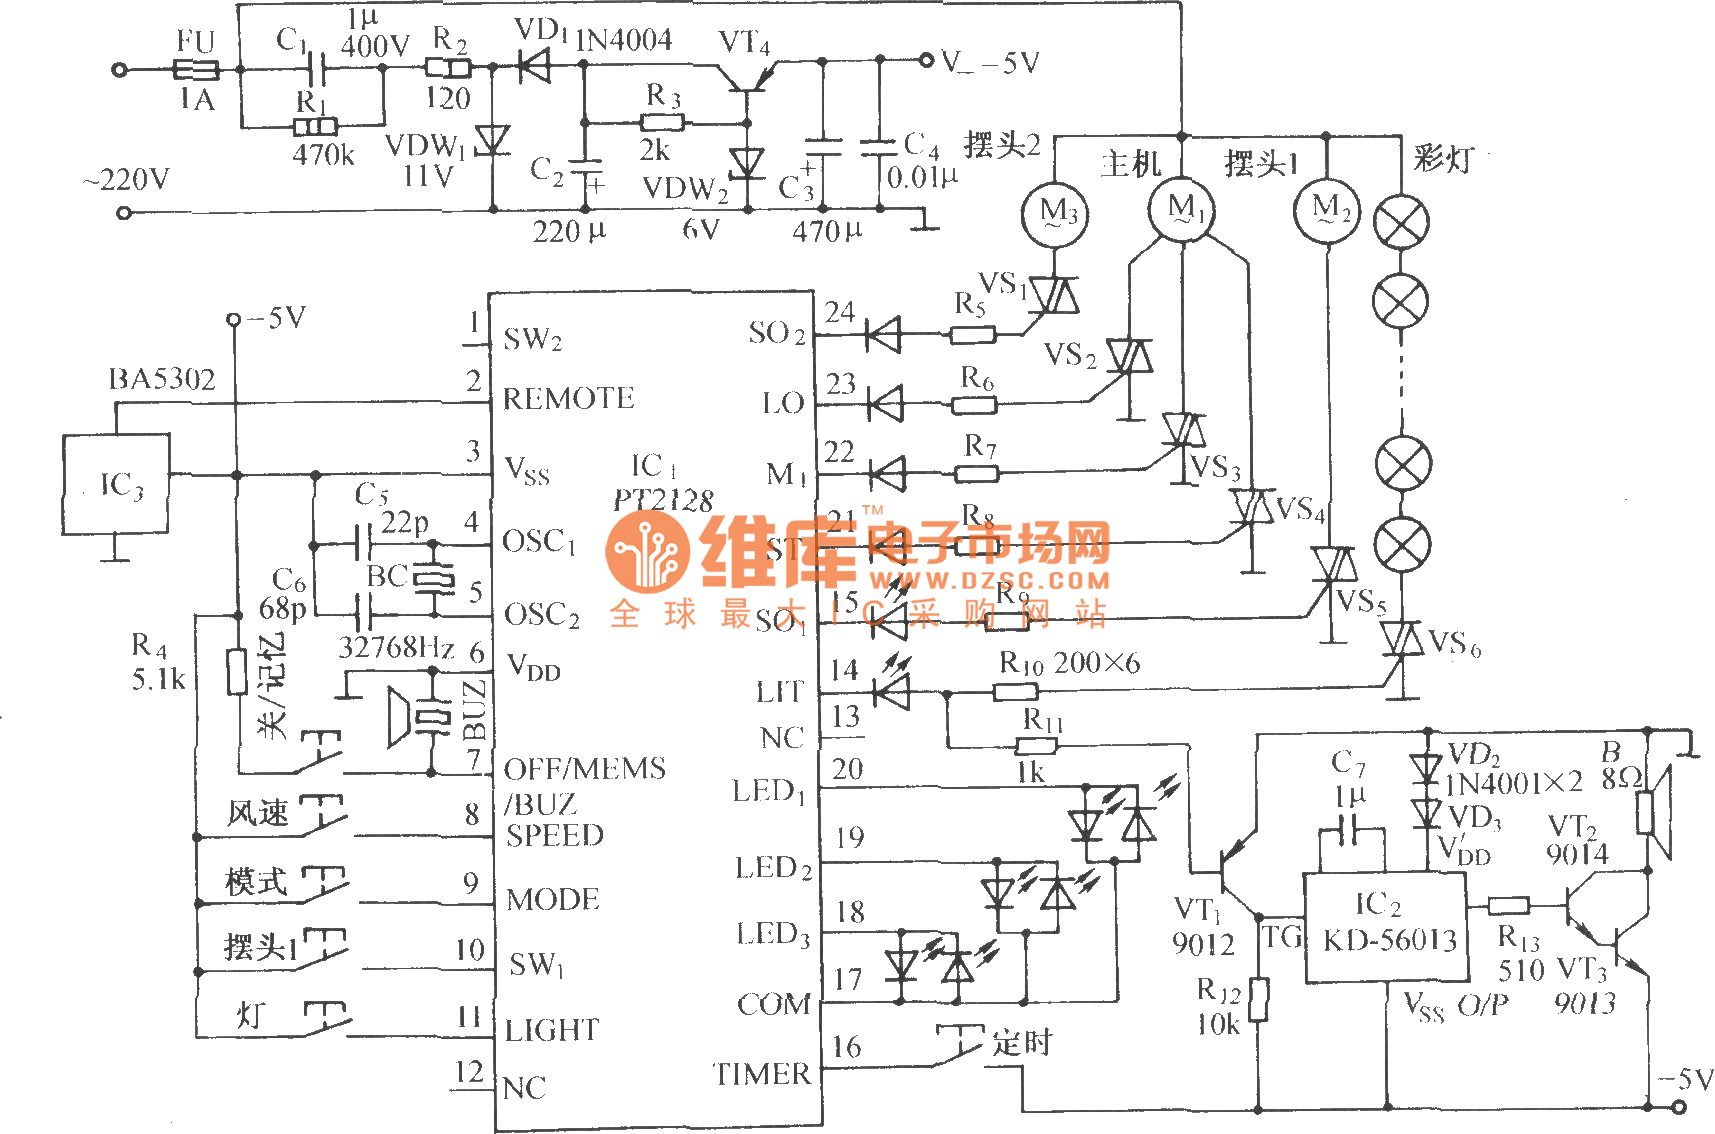 Using Pt2128 Pt2268 Function Remote Control Fan Circuit Diagram Laptop Wiring